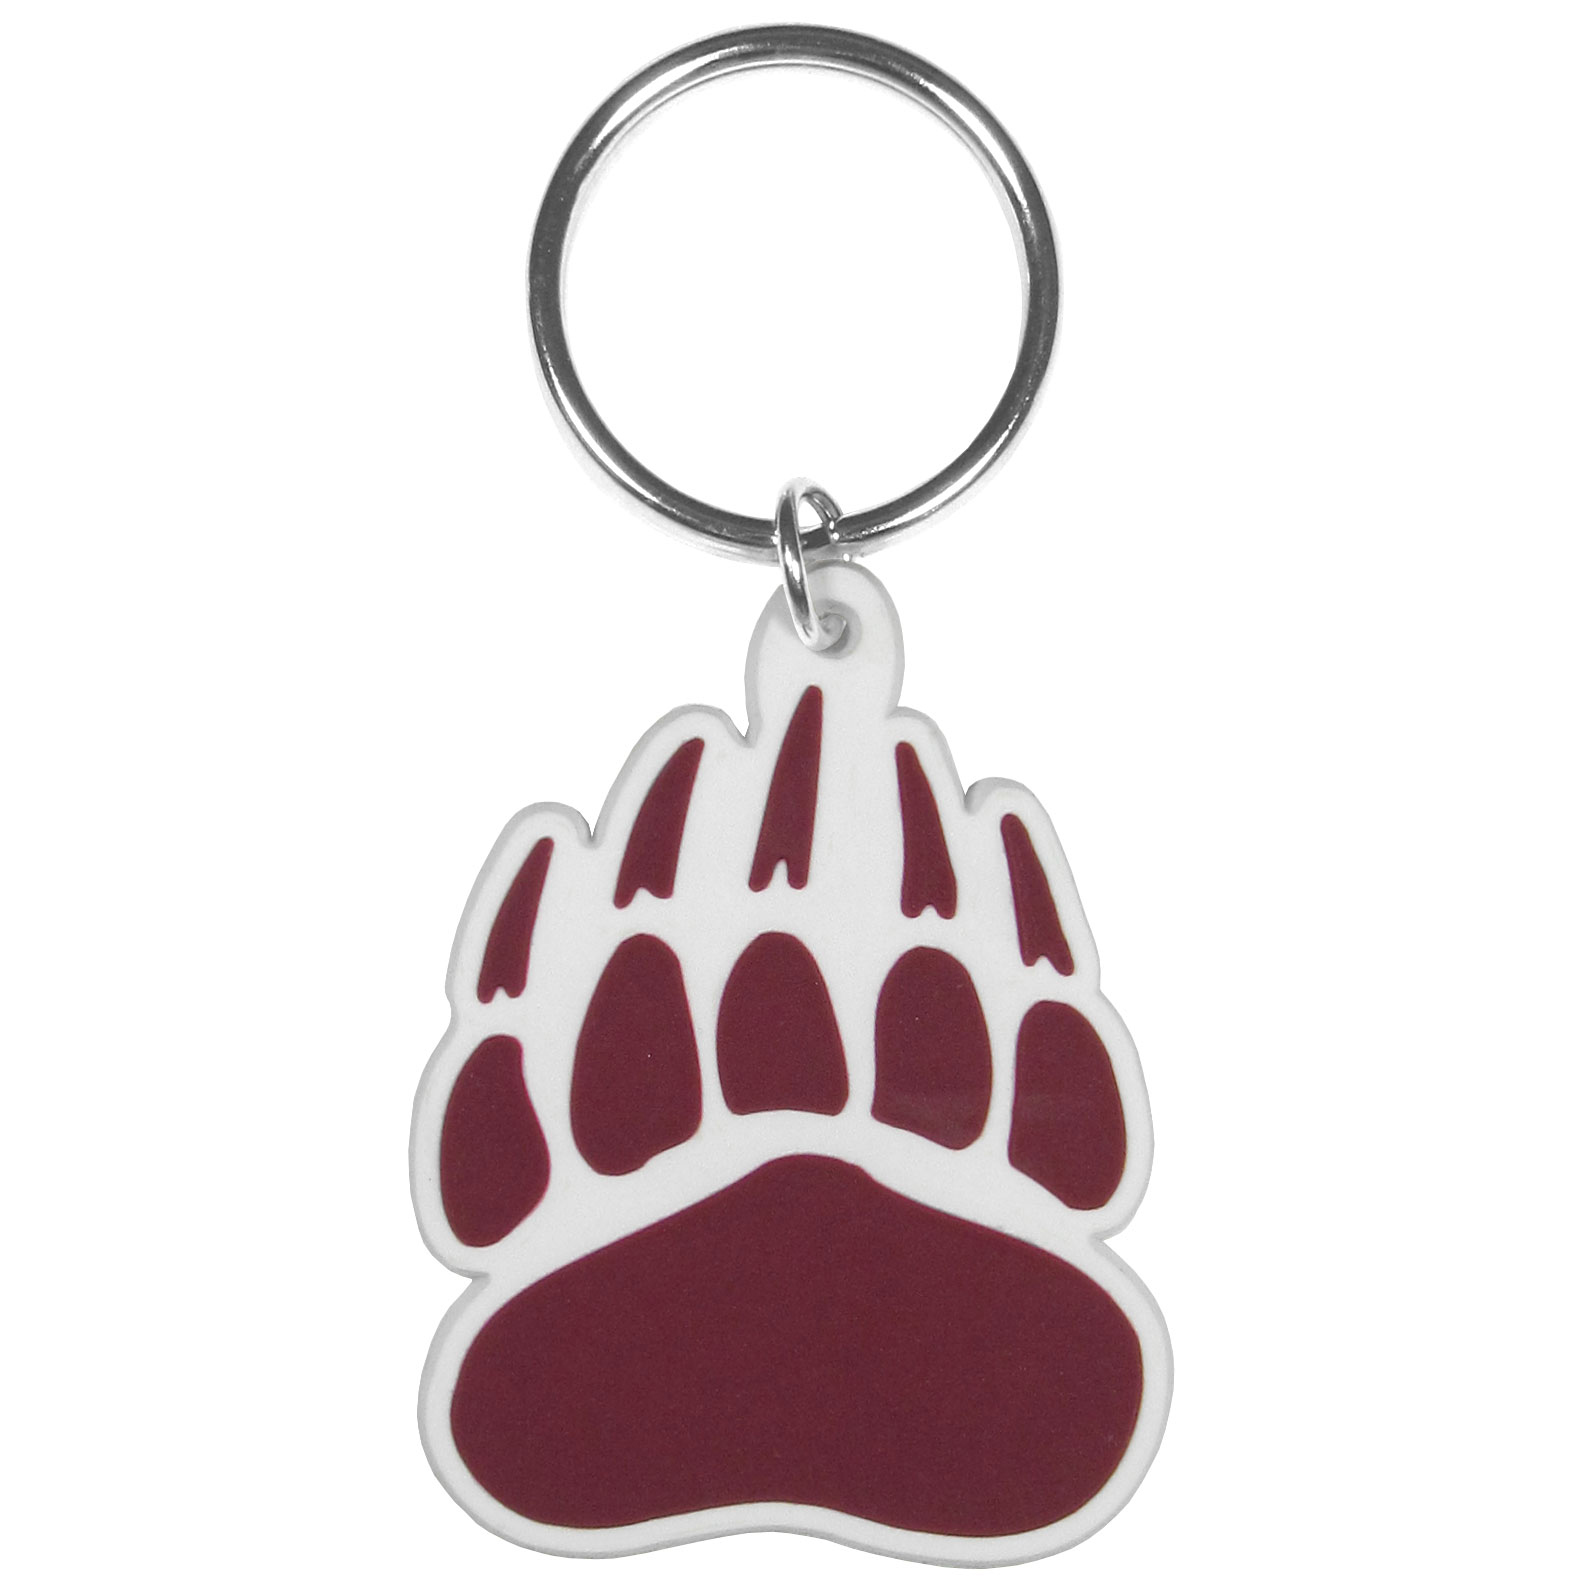 Montana Grizzlies Flex Key Chain - Our fun, flexible Montana Grizzlies key chains are made of a rubbery material that is layered to create a bright, textured logo.